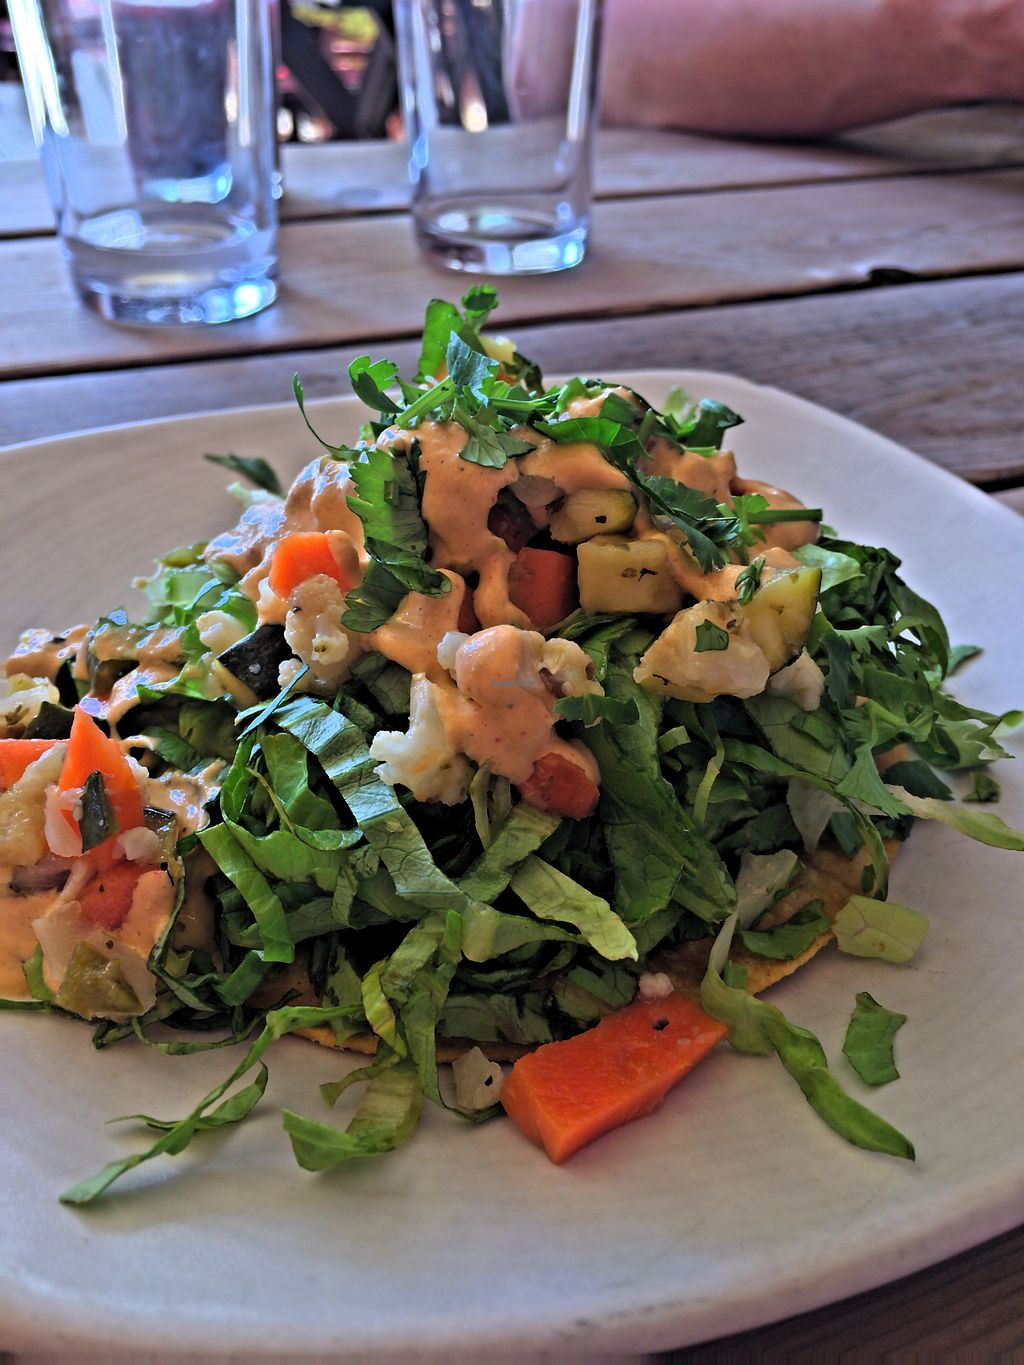 """Photo of Gracias Madre  by <a href=""""/members/profile/EthanBungay"""">EthanBungay</a> <br/>Delicious Tostada <br/> April 18, 2018  - <a href='/contact/abuse/image/19889/387466'>Report</a>"""